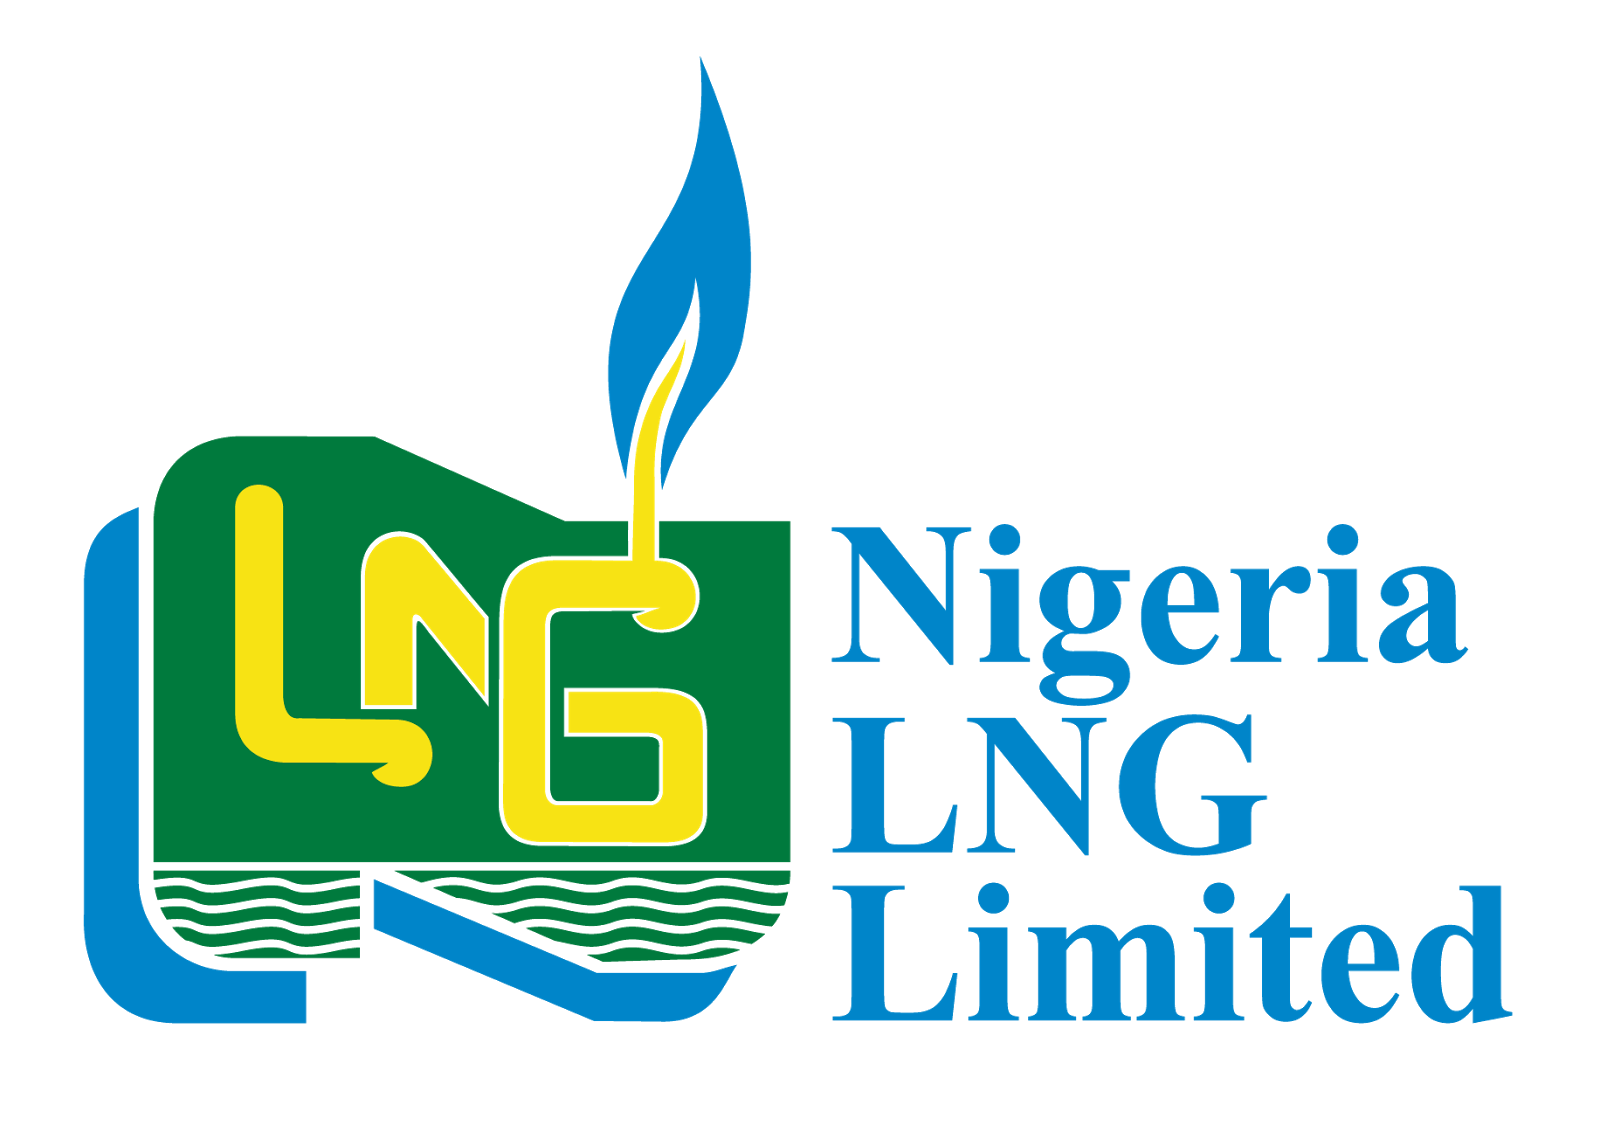 Lng Liquefied Natural Gas Limited